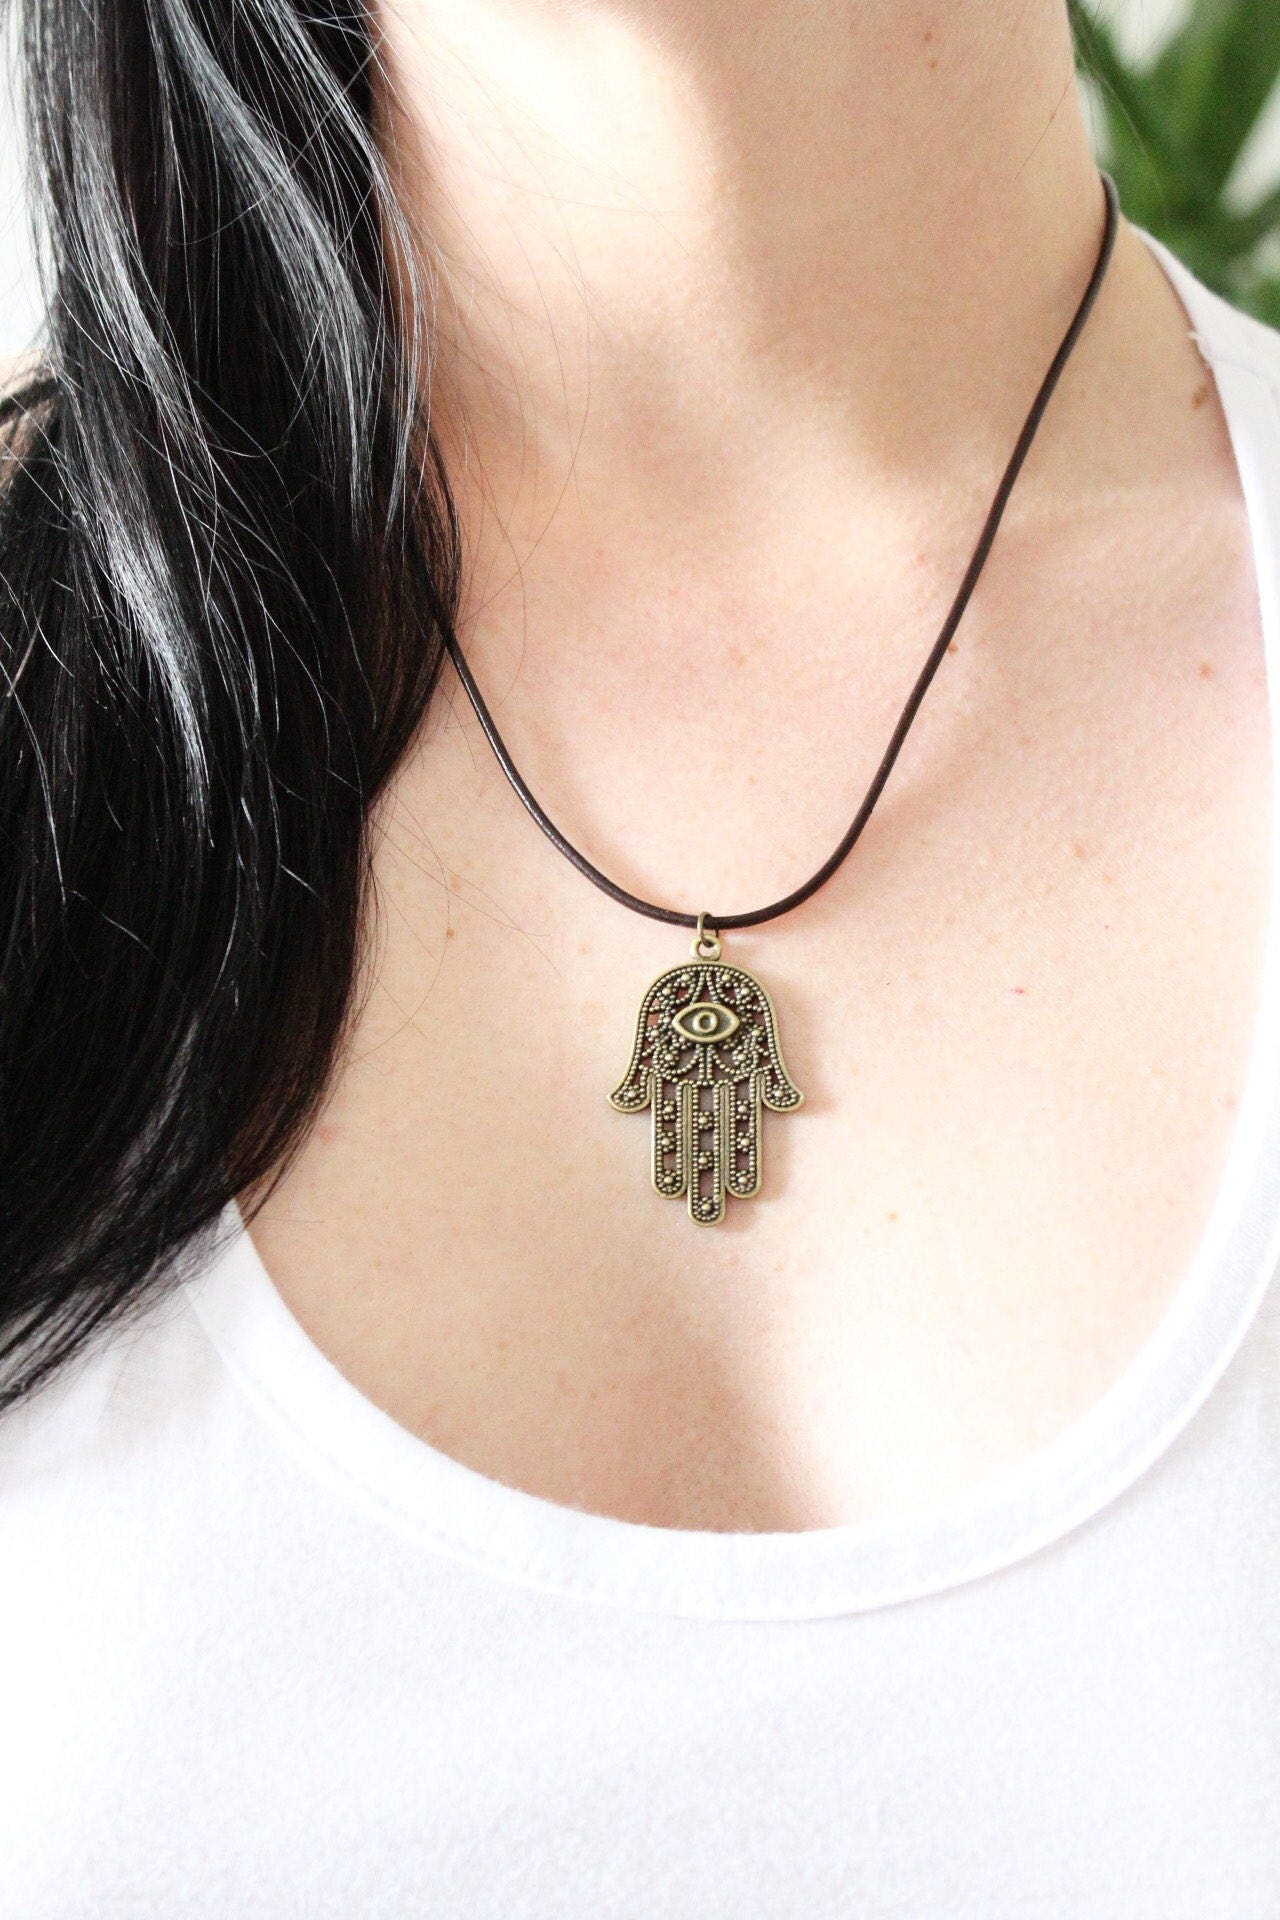 Antique gold Hamsa leather UNISEX necklace  choker  boho jewellery charm necklace leather necklace mens jewelry